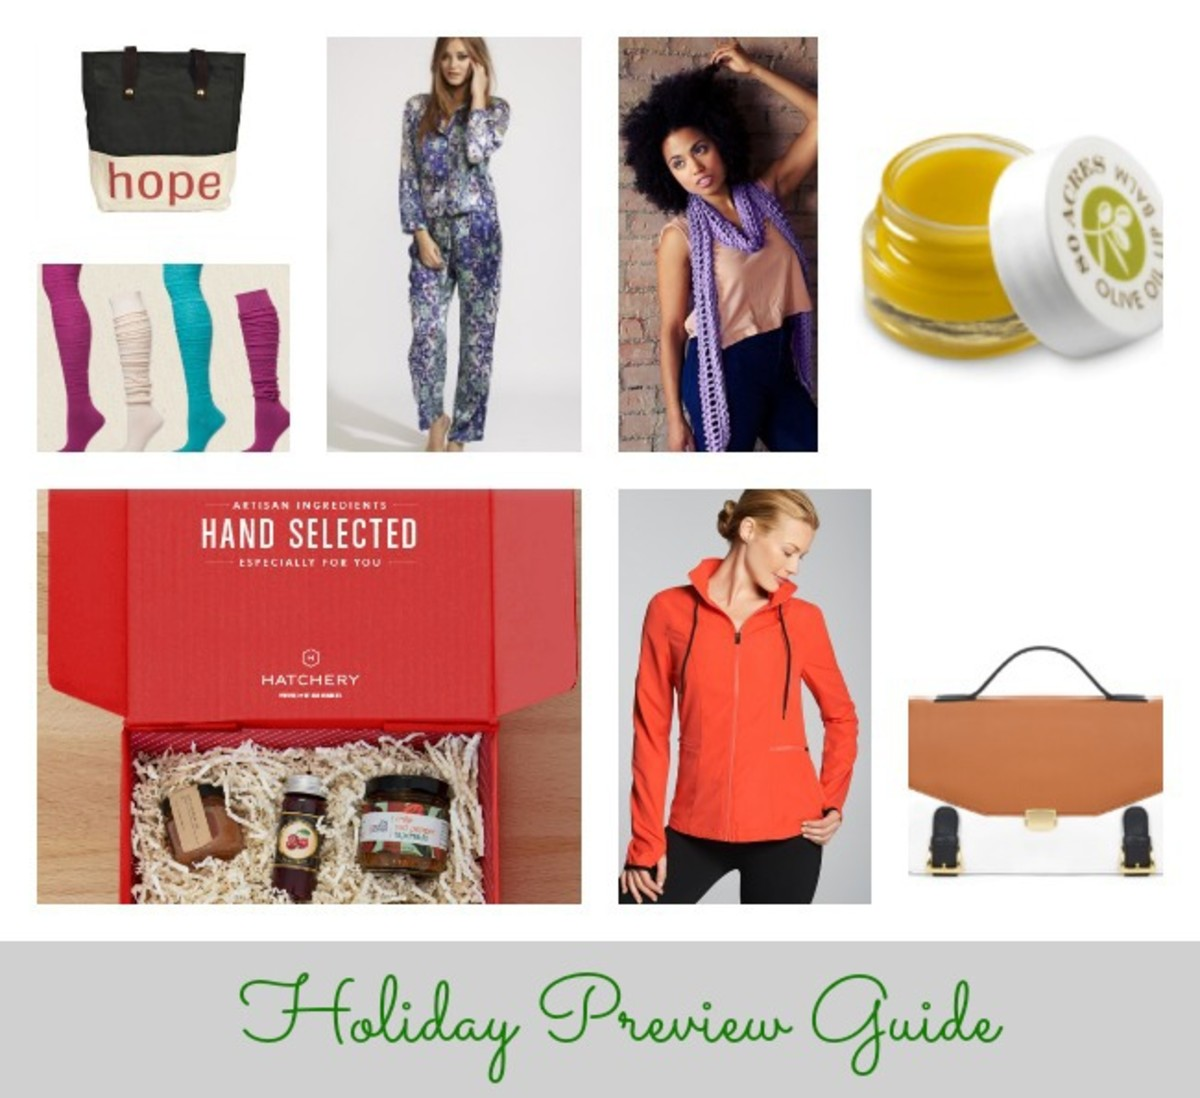 Holiday Preview